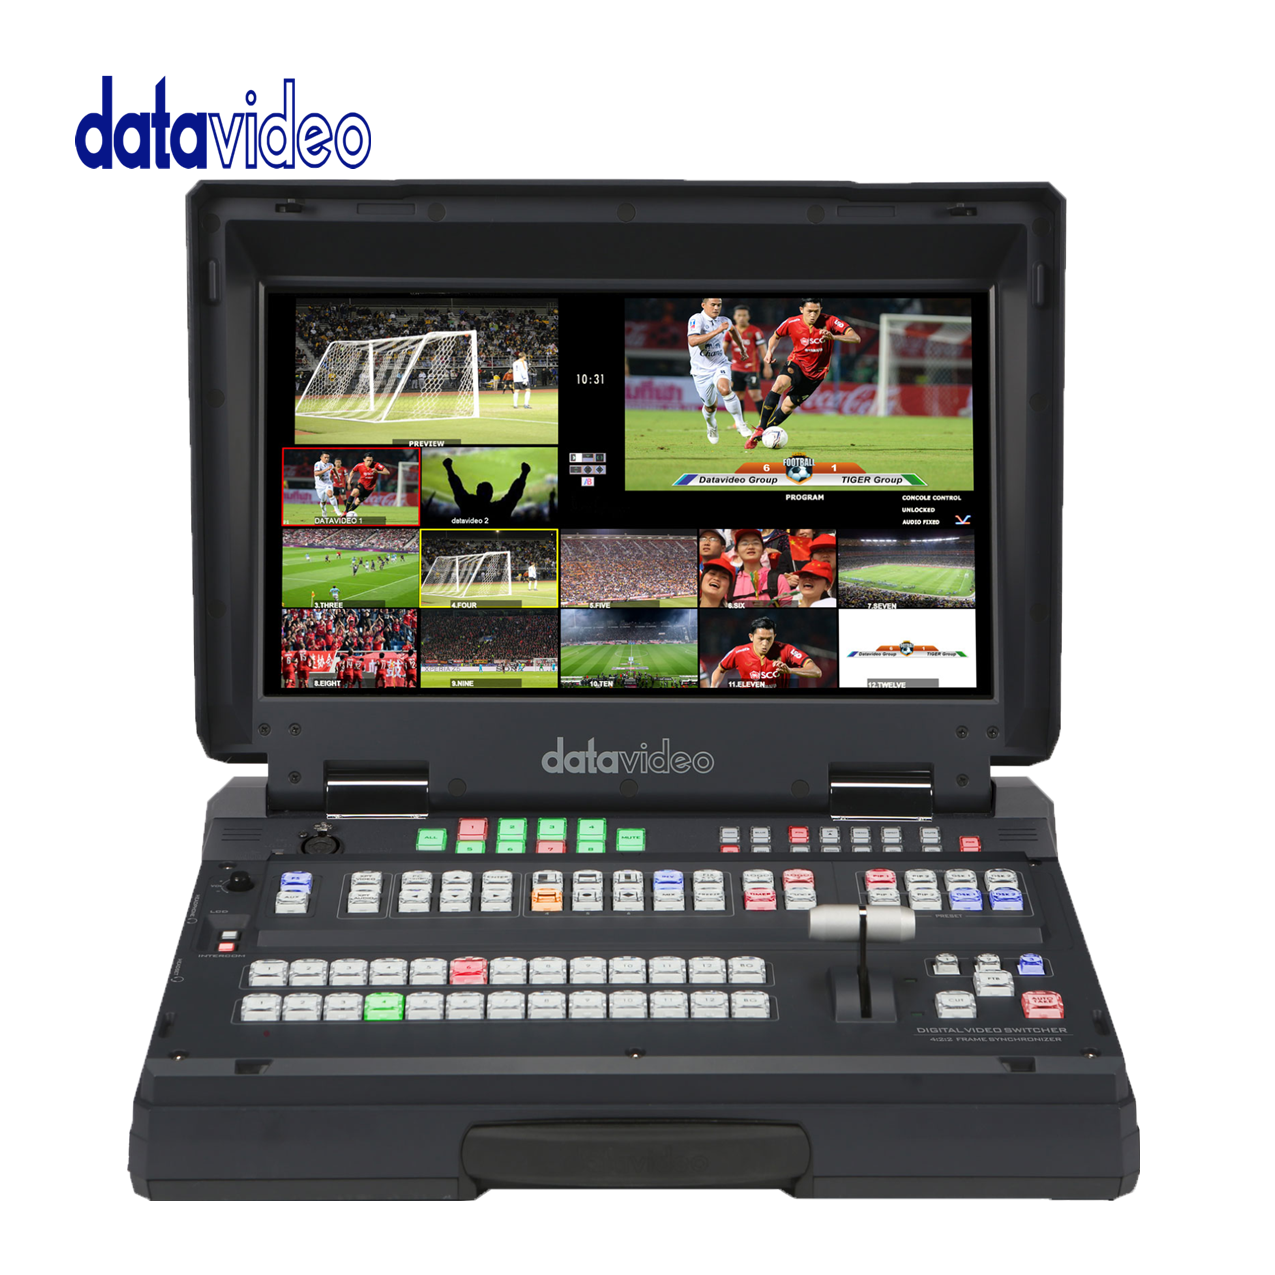 Data Video HsS-2850 HD/SD 8-Channel Portable Video Studio Pro Video Data Video